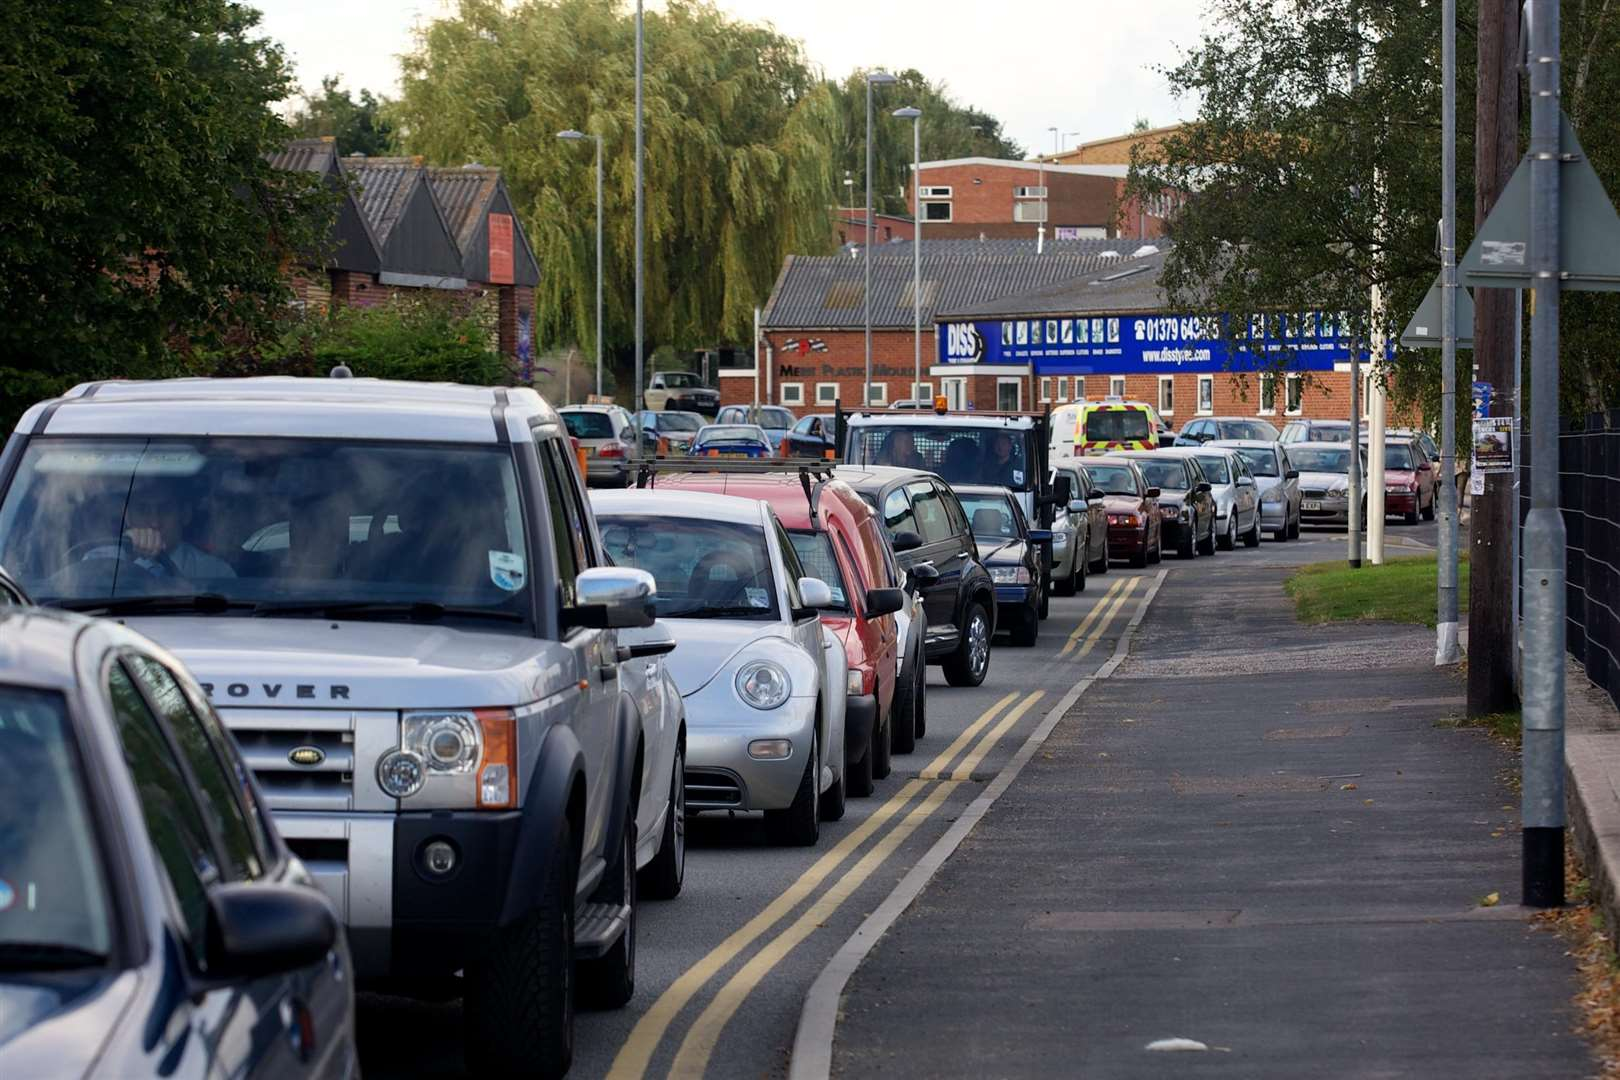 Diss, Norfolk. Traffic Congestion on Vinces Road.